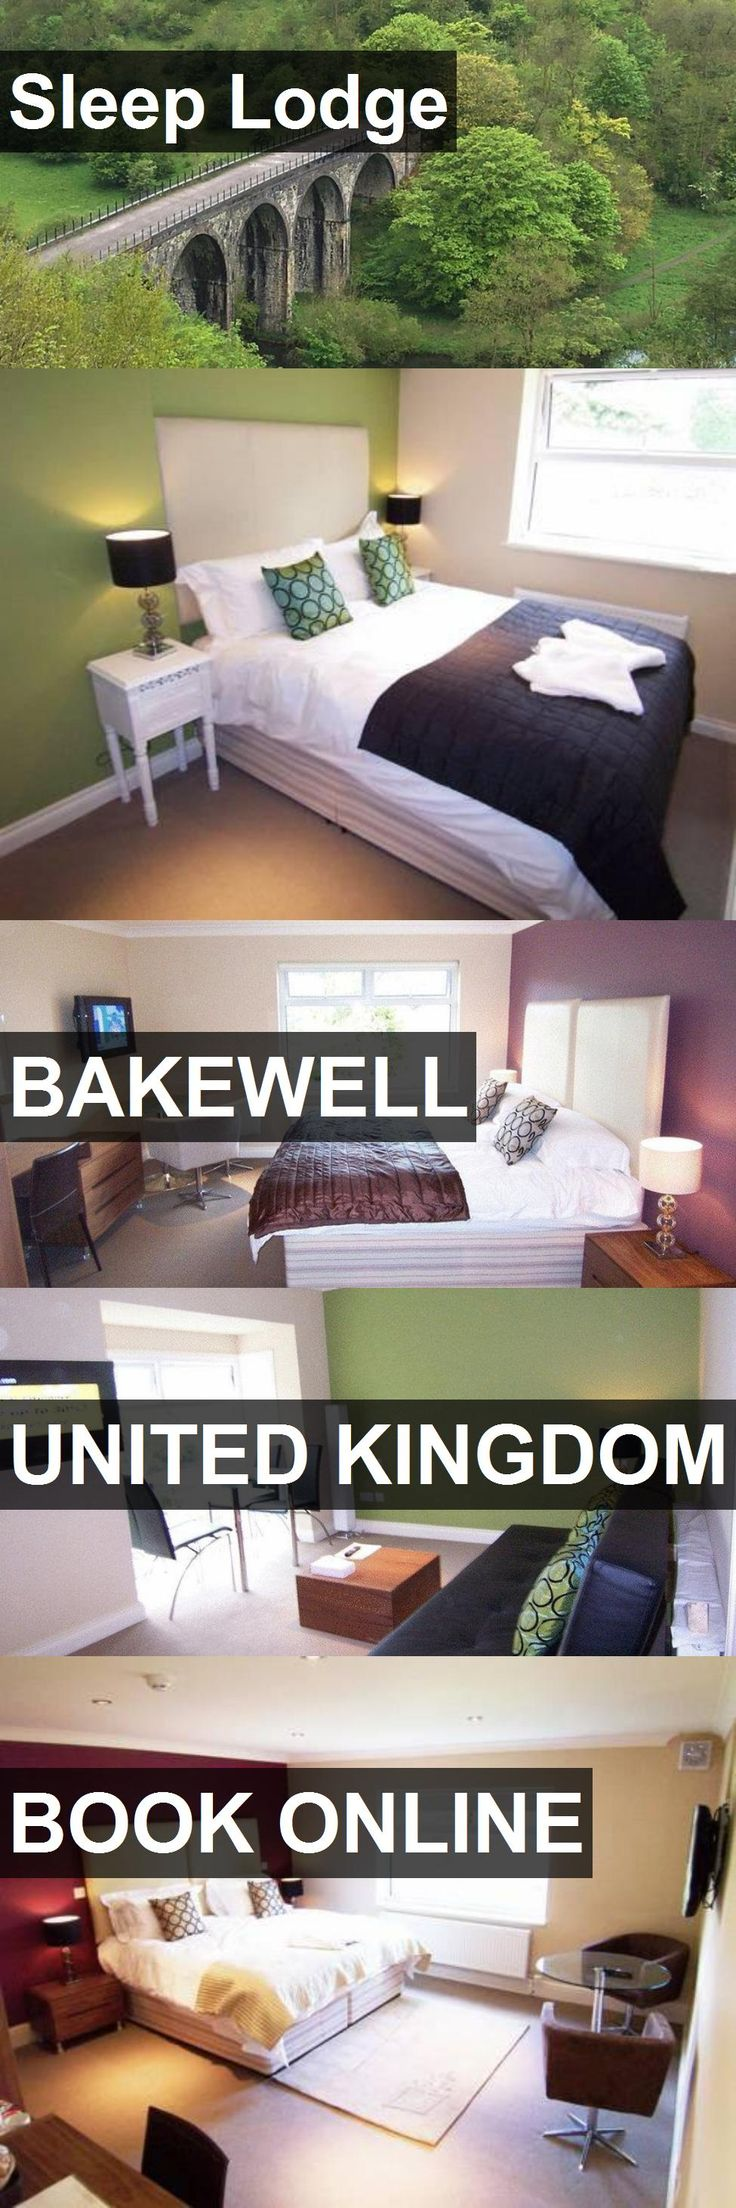 Hotel Sleep Lodge in Bakewell, United Kingdom. For more information, photos, reviews and best prices please follow the link. #UnitedKingdom #Bakewell #travel #vacation #hotel